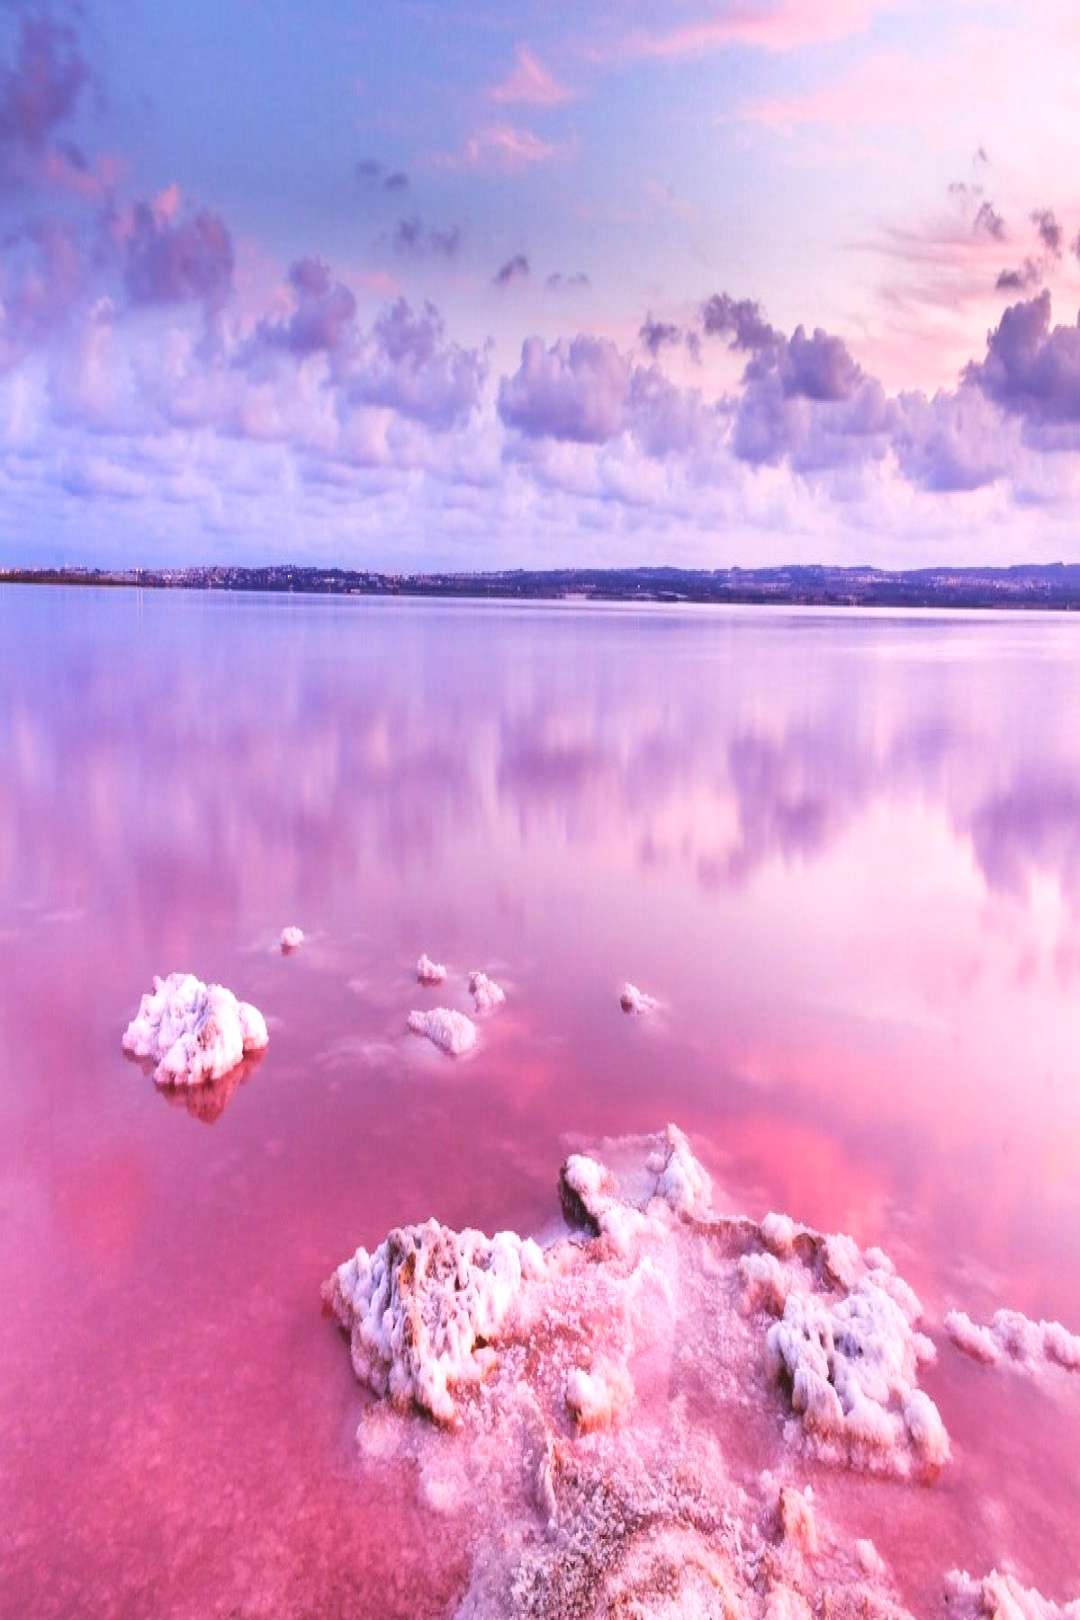 The Pink Lake and Alicante's historic quarter